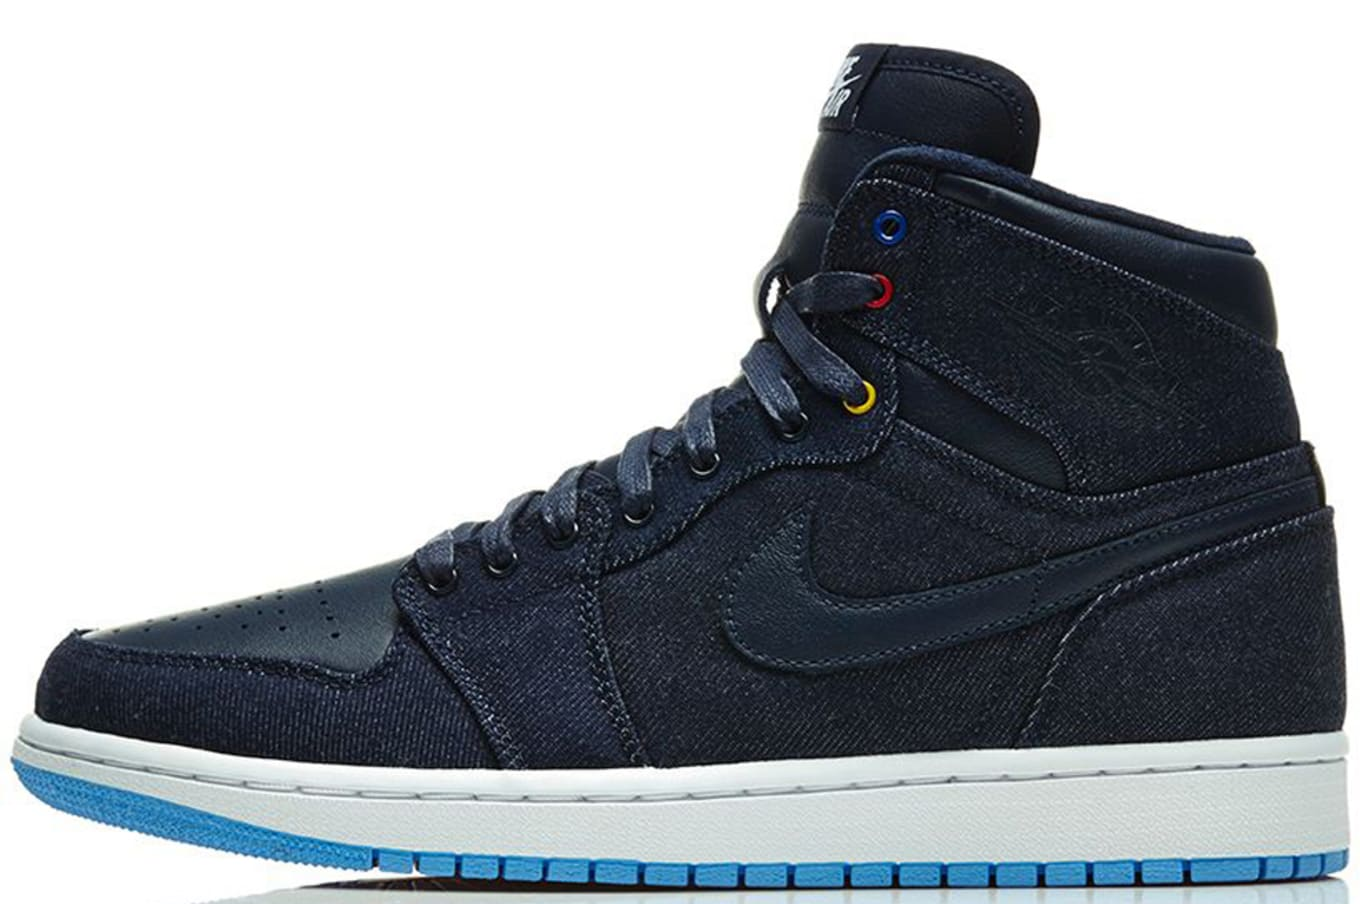 huge selection of c35f3 e4458 Air Jordan 1 Retro High OG Obsidian White Dark Powder Blue Game Royal